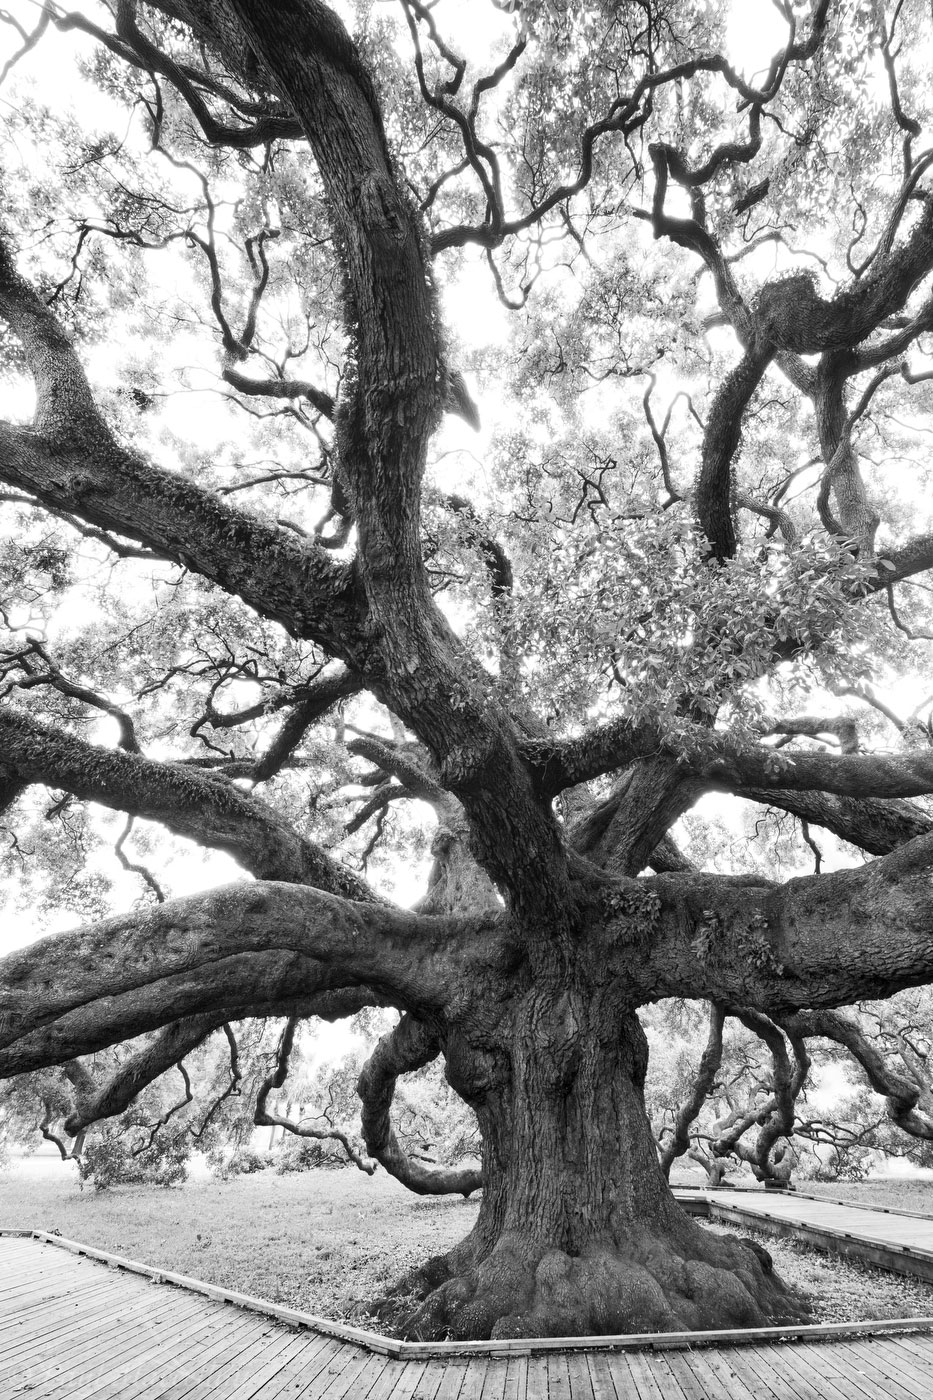 treaty oak, Jacksonville, florida, nature, photography, photo